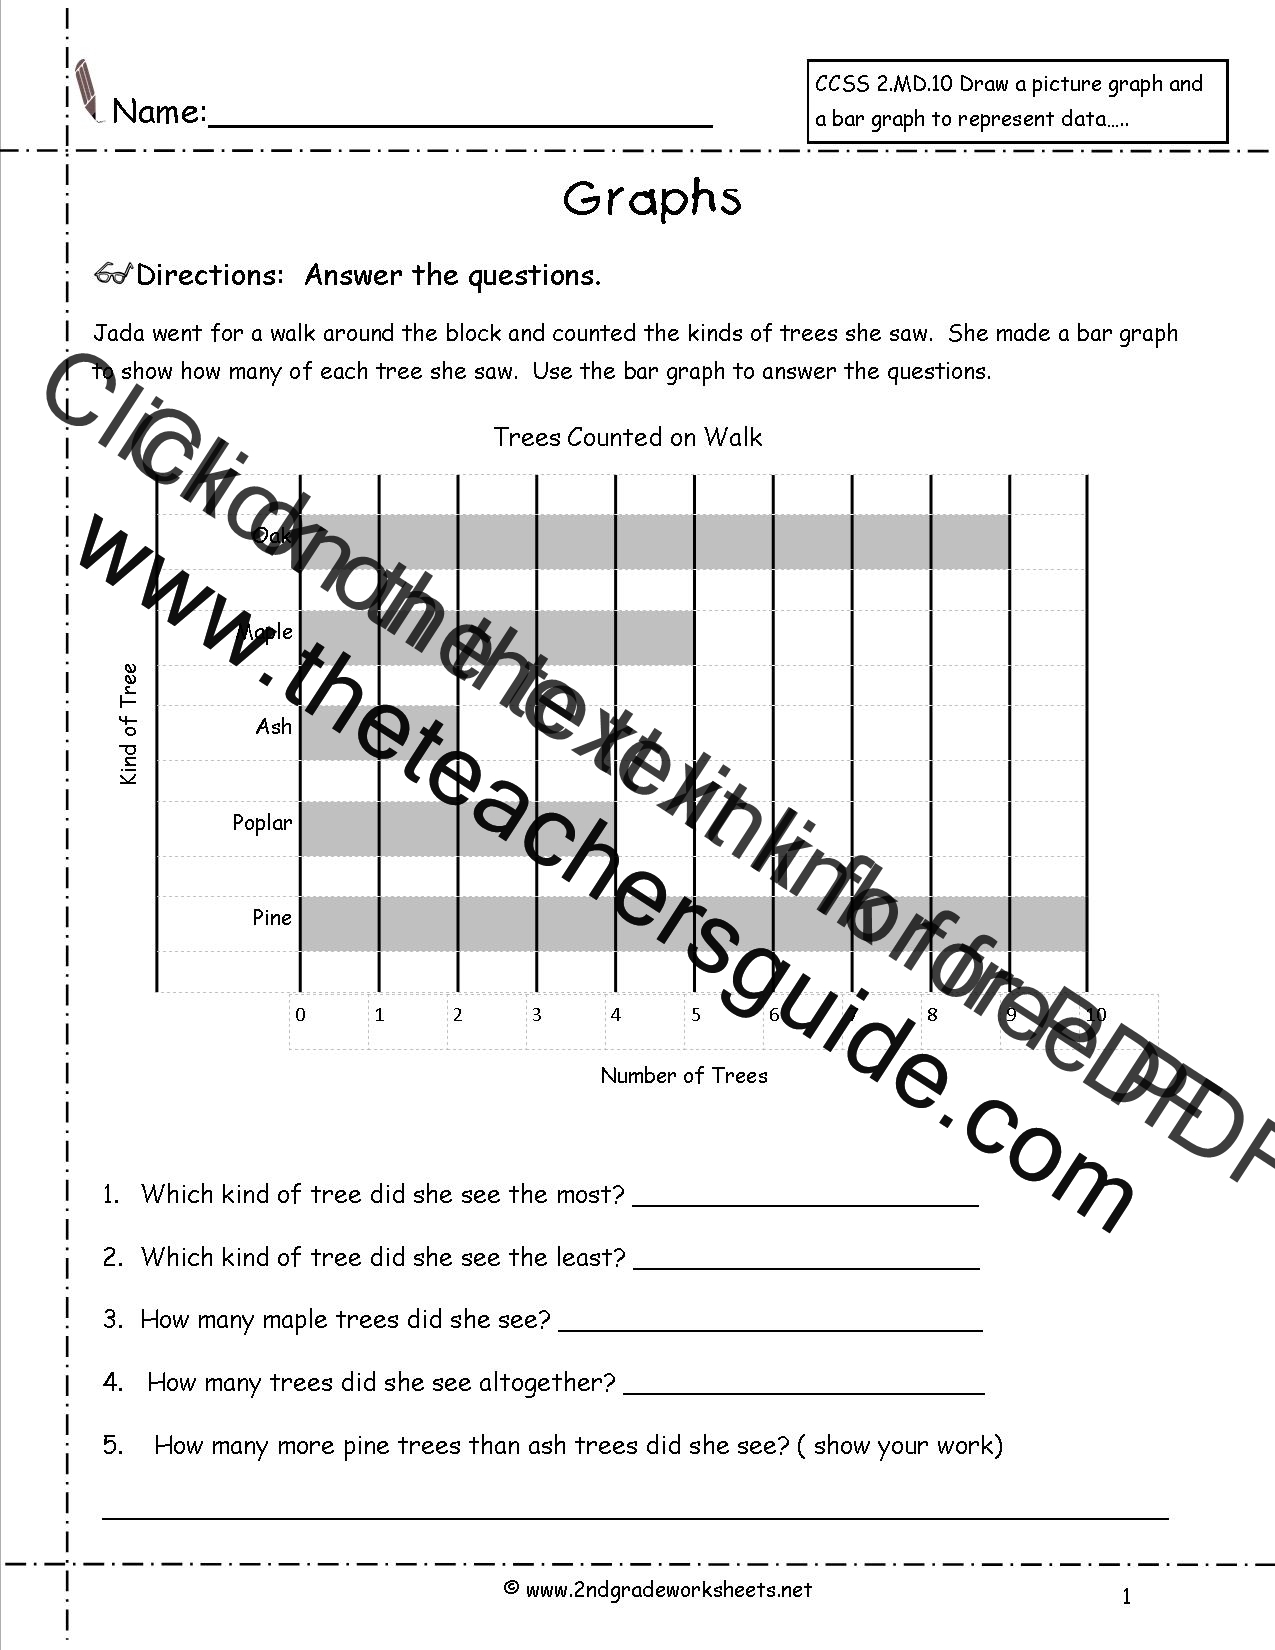 Worksheets Graphs Worksheets reading and creating bar graphs worksheets from the teachers guide trees graph